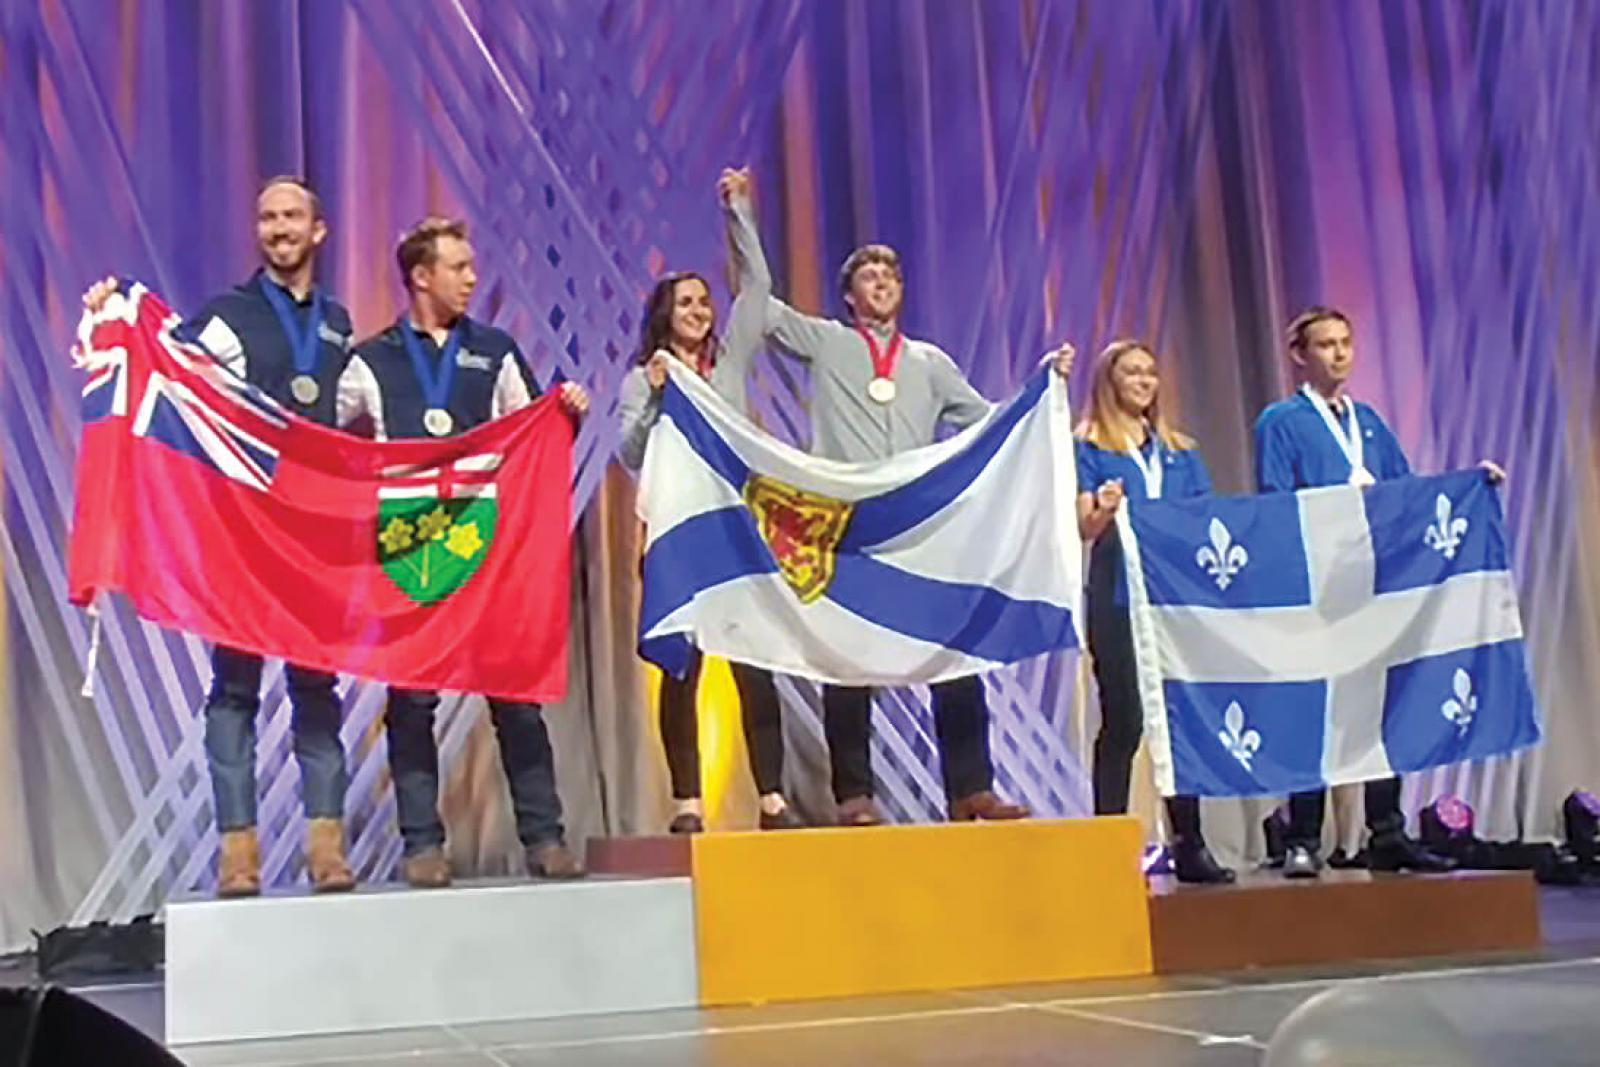 Algonquin College's Blaise Mombourquett (far left) and Thomas Hawley hold the Ontario flag atop the silver podium at Skills Canada 2018 in Edmonton, Alta.